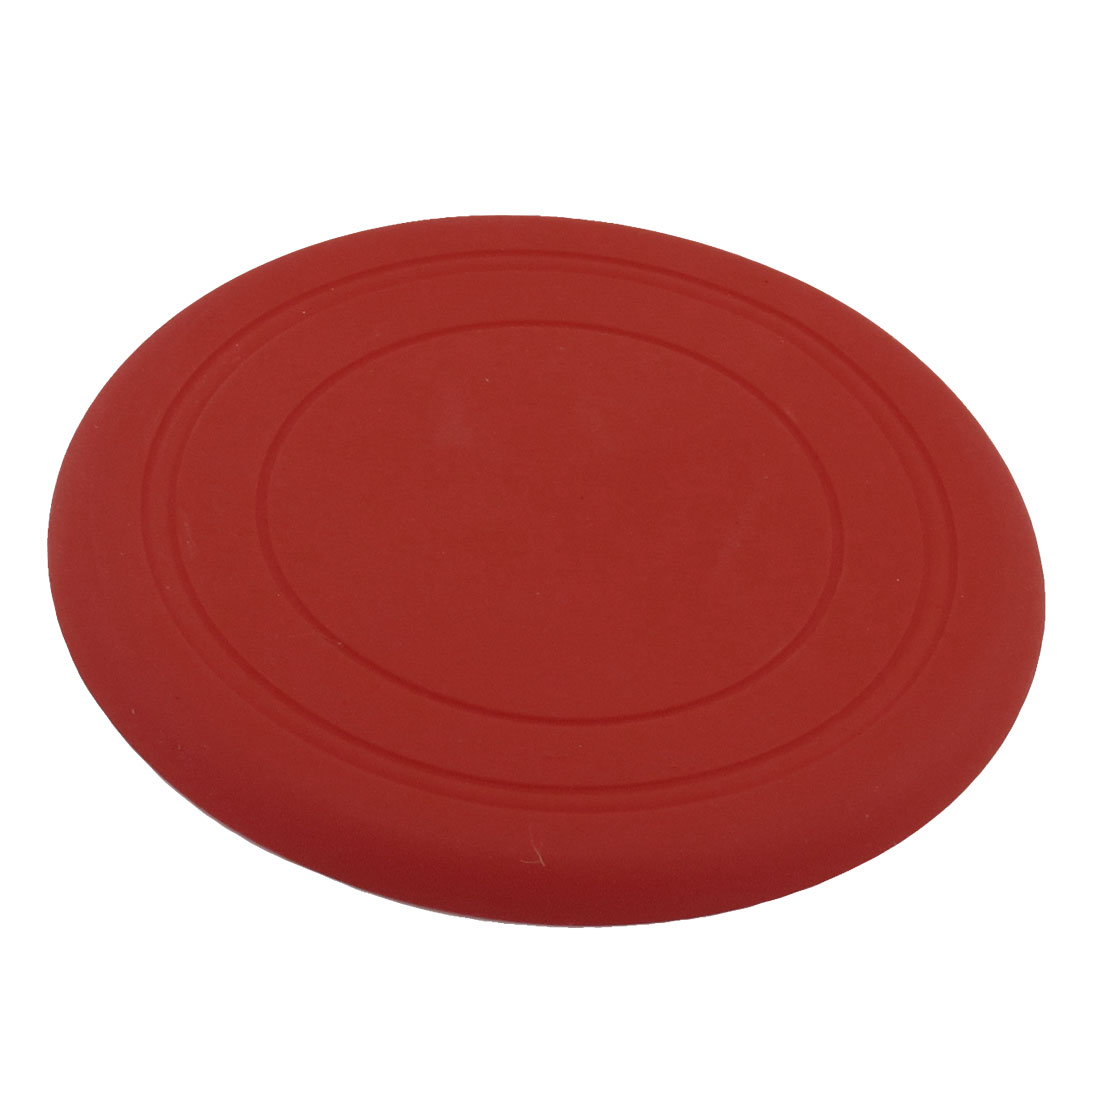 "Silicone Round Shaped Exercising Flying Frisbee Toy Pet Doggie Red 6.7"" Dia"